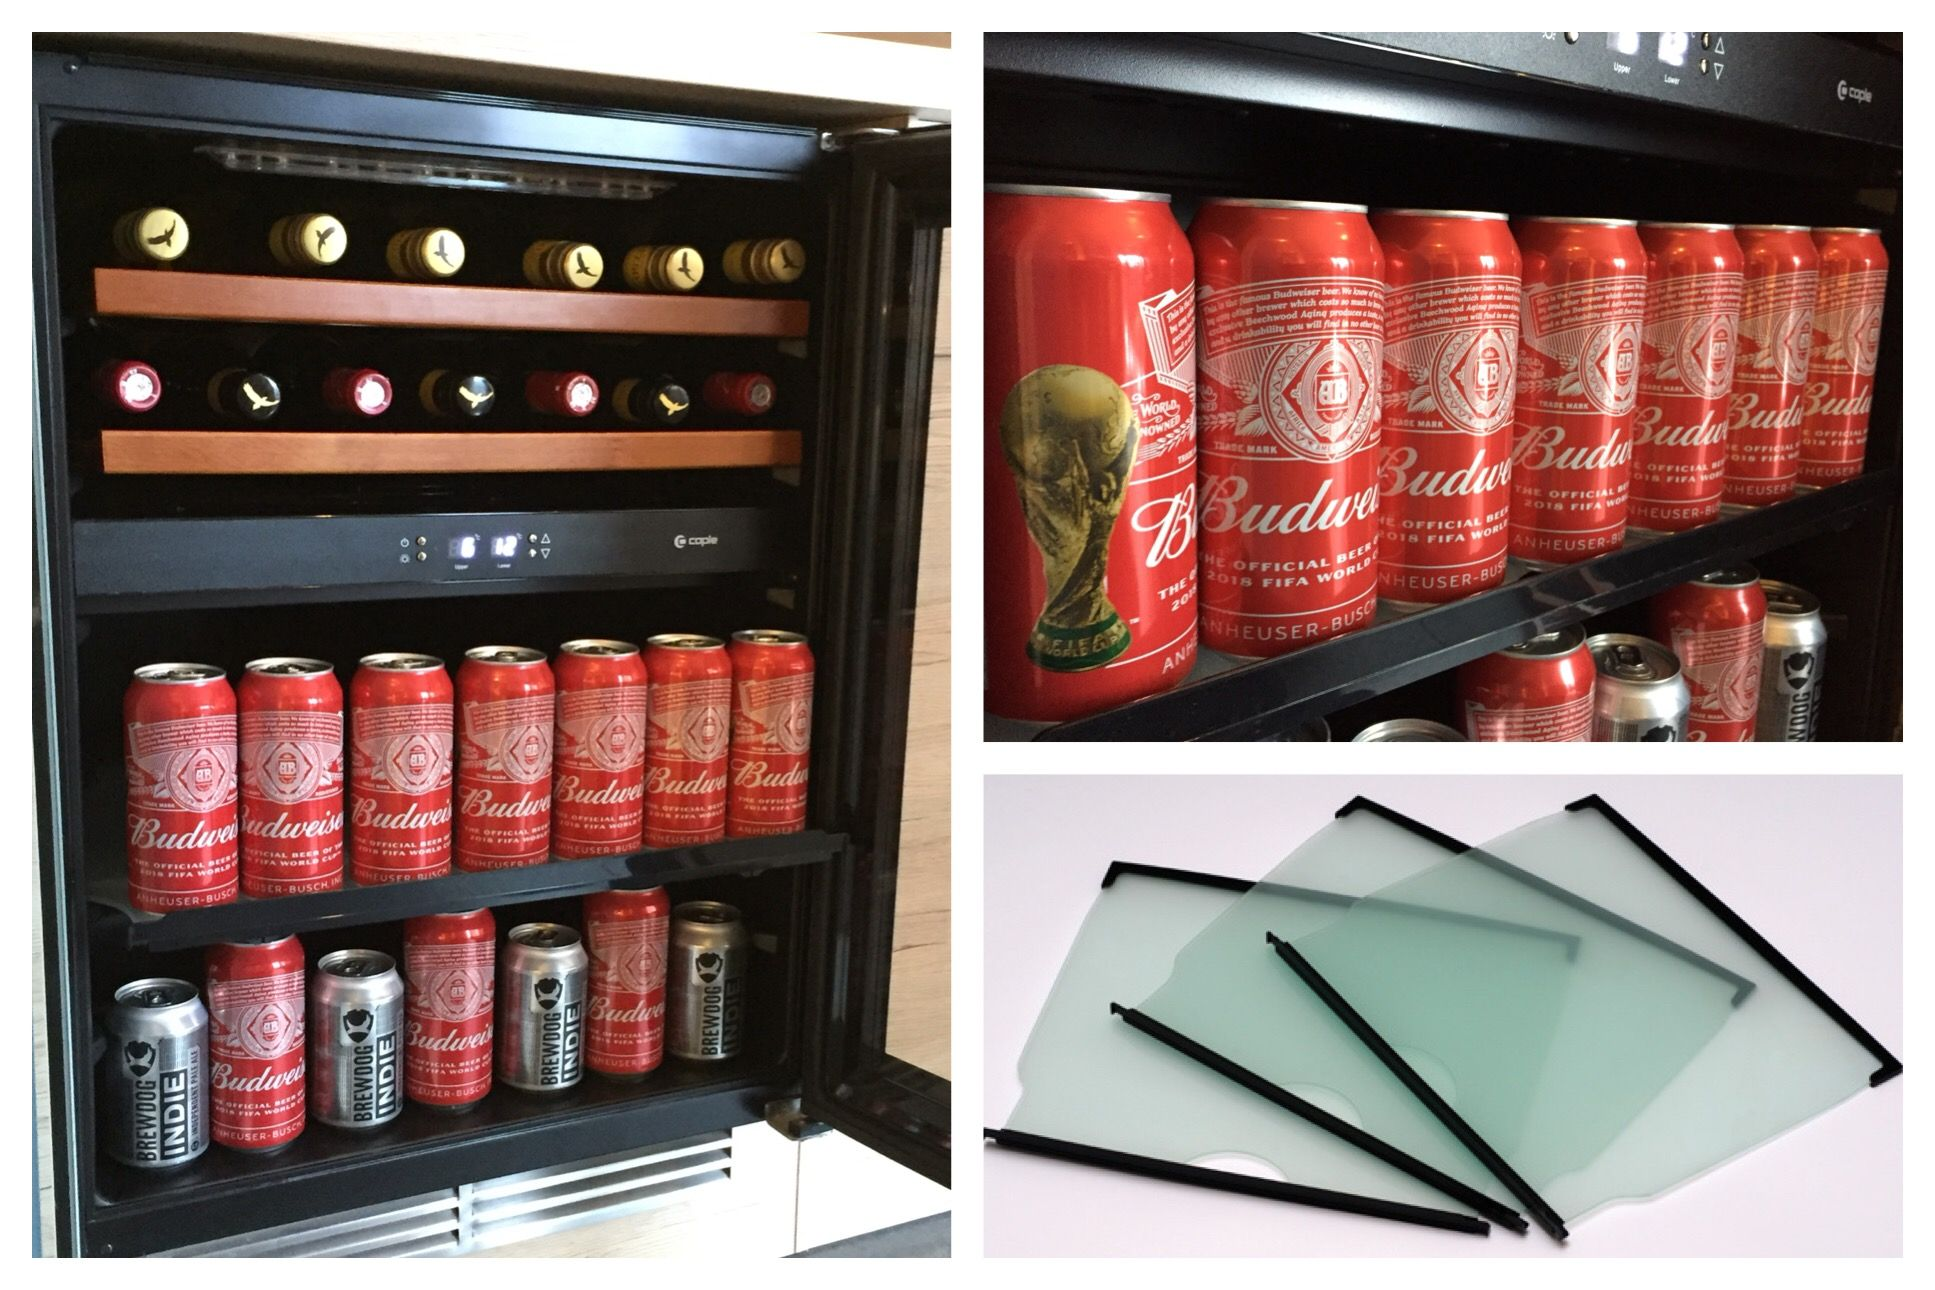 Stylish Caple Wine Cooler Converted Into A Beer Fridge With A Set Of Glass Shelving You Can Convert Your Wine Built In Wine Cooler Wine Cooler Wine Cabinets